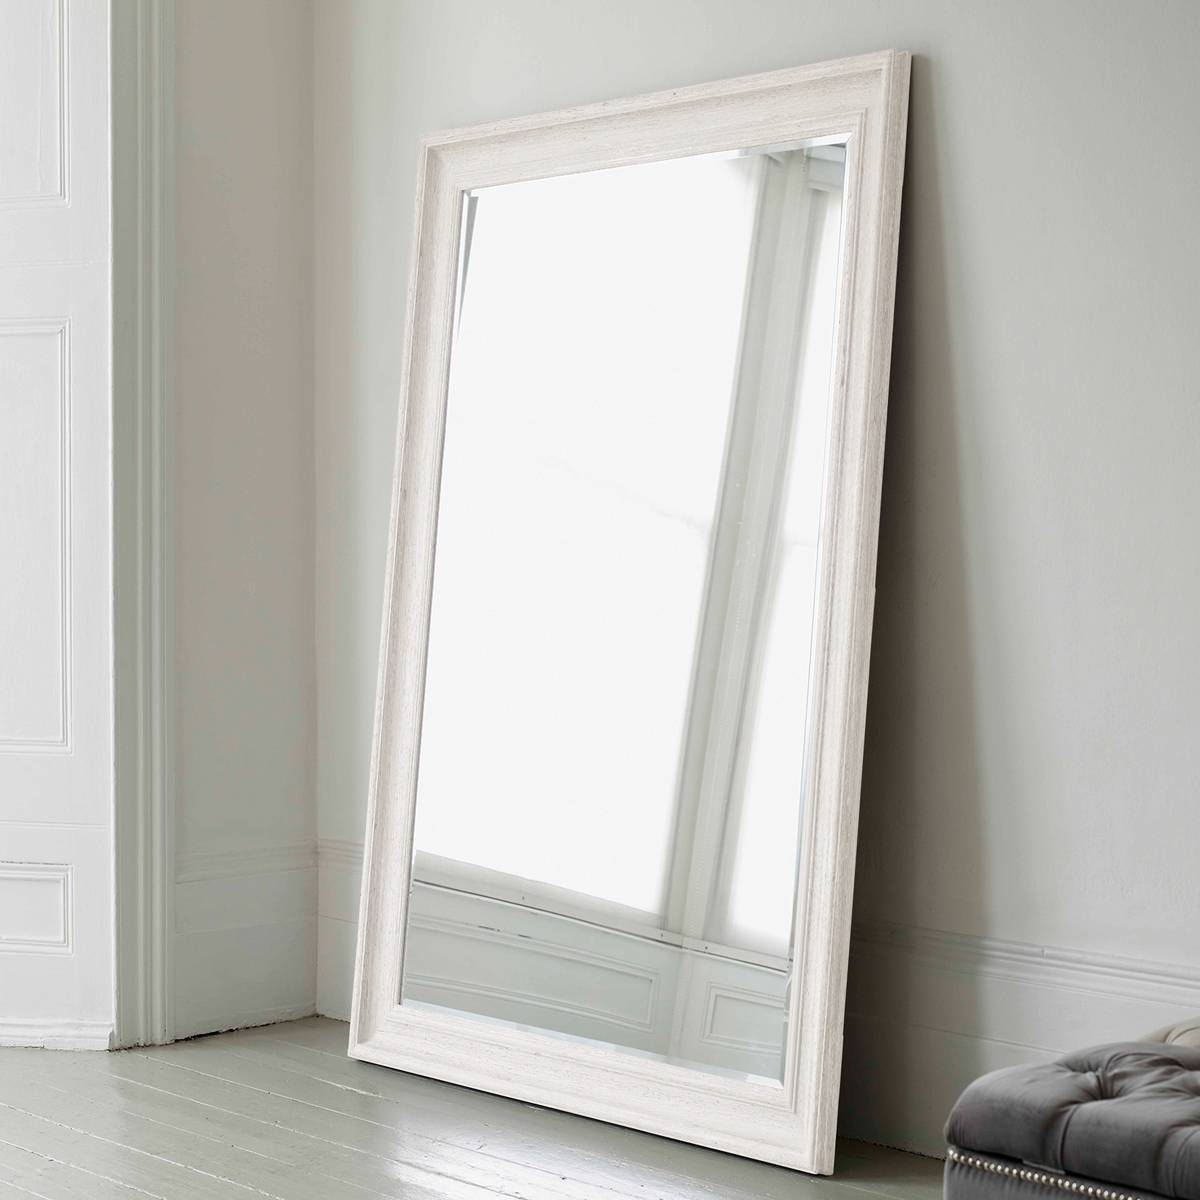 Vermont Oversized Mirror - Antique White | Brissi throughout Oversized Mirrors (Image 13 of 15)